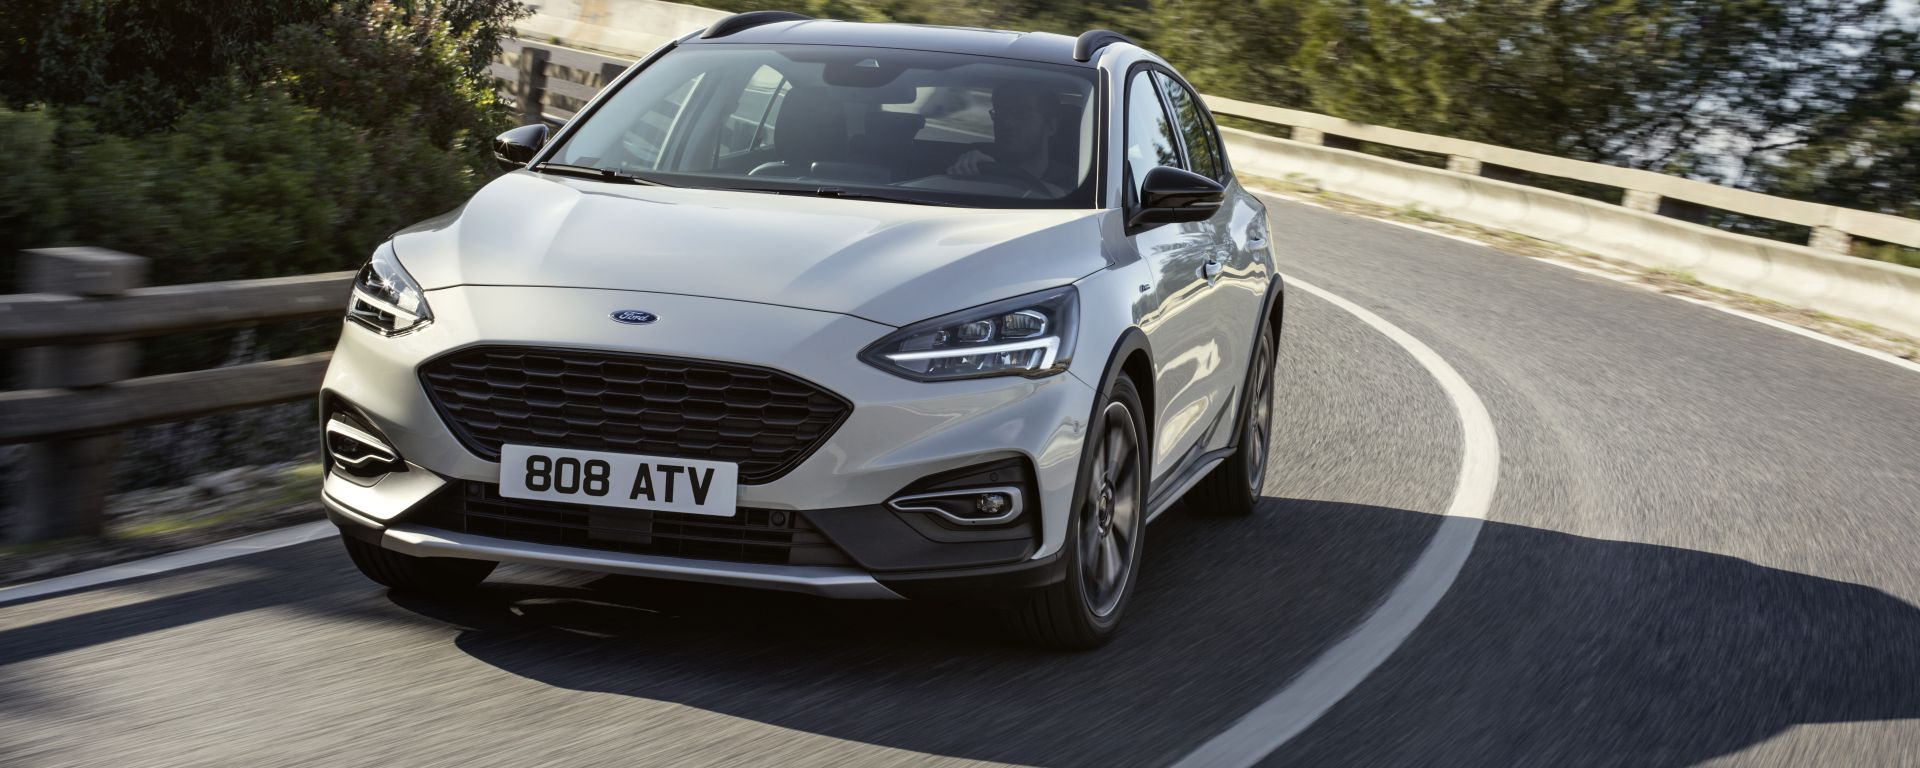 Ford Focus Active Wagon, la prova su strada